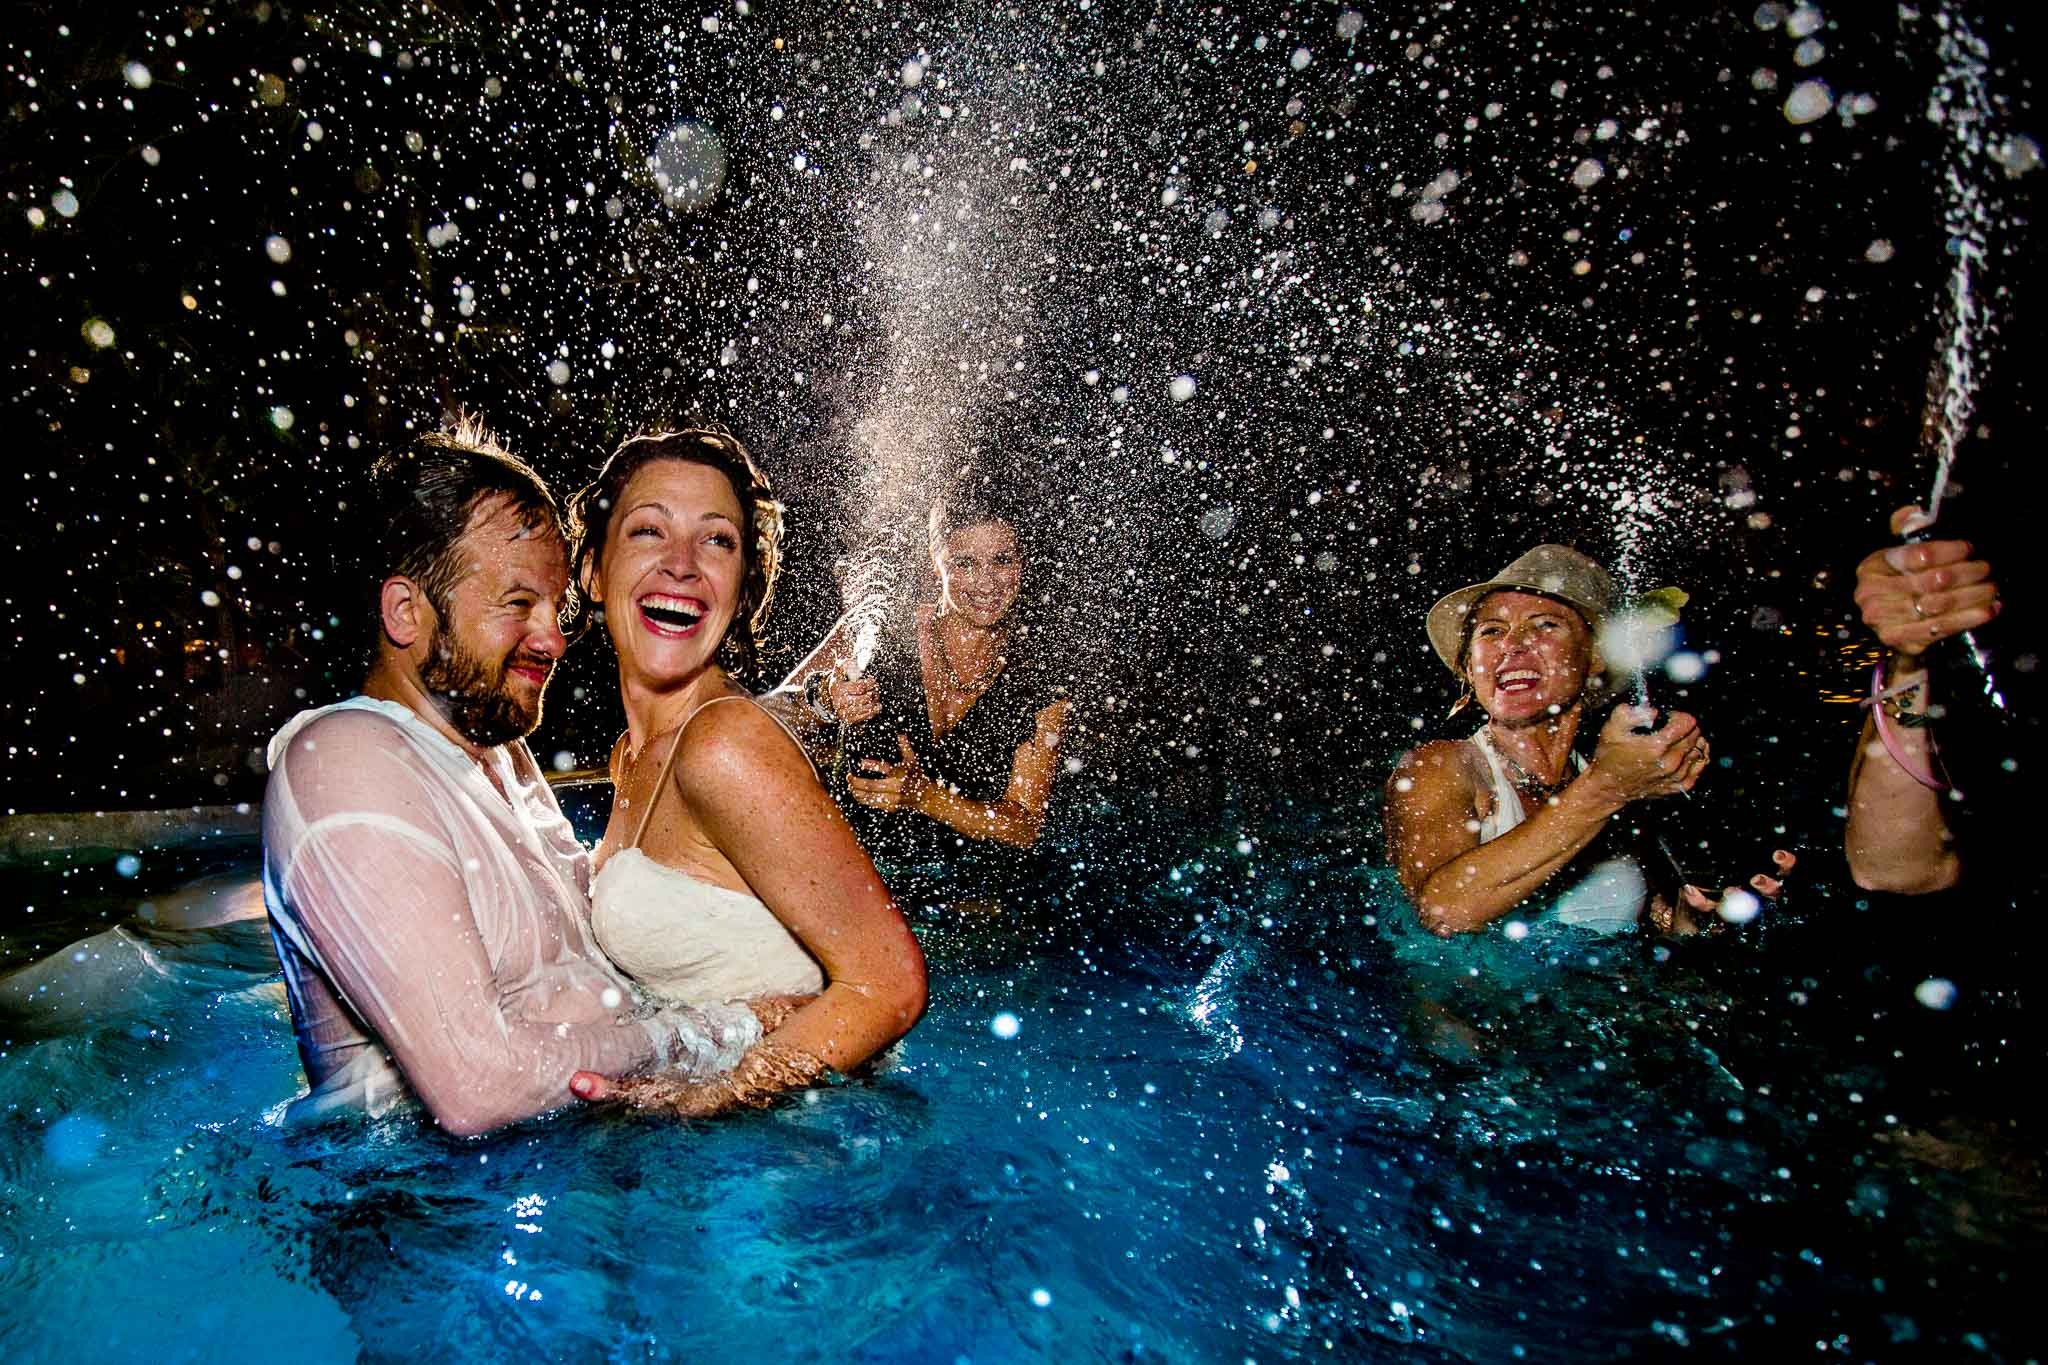 award winning wedding photo bride and groom champagne toast in pool with spray